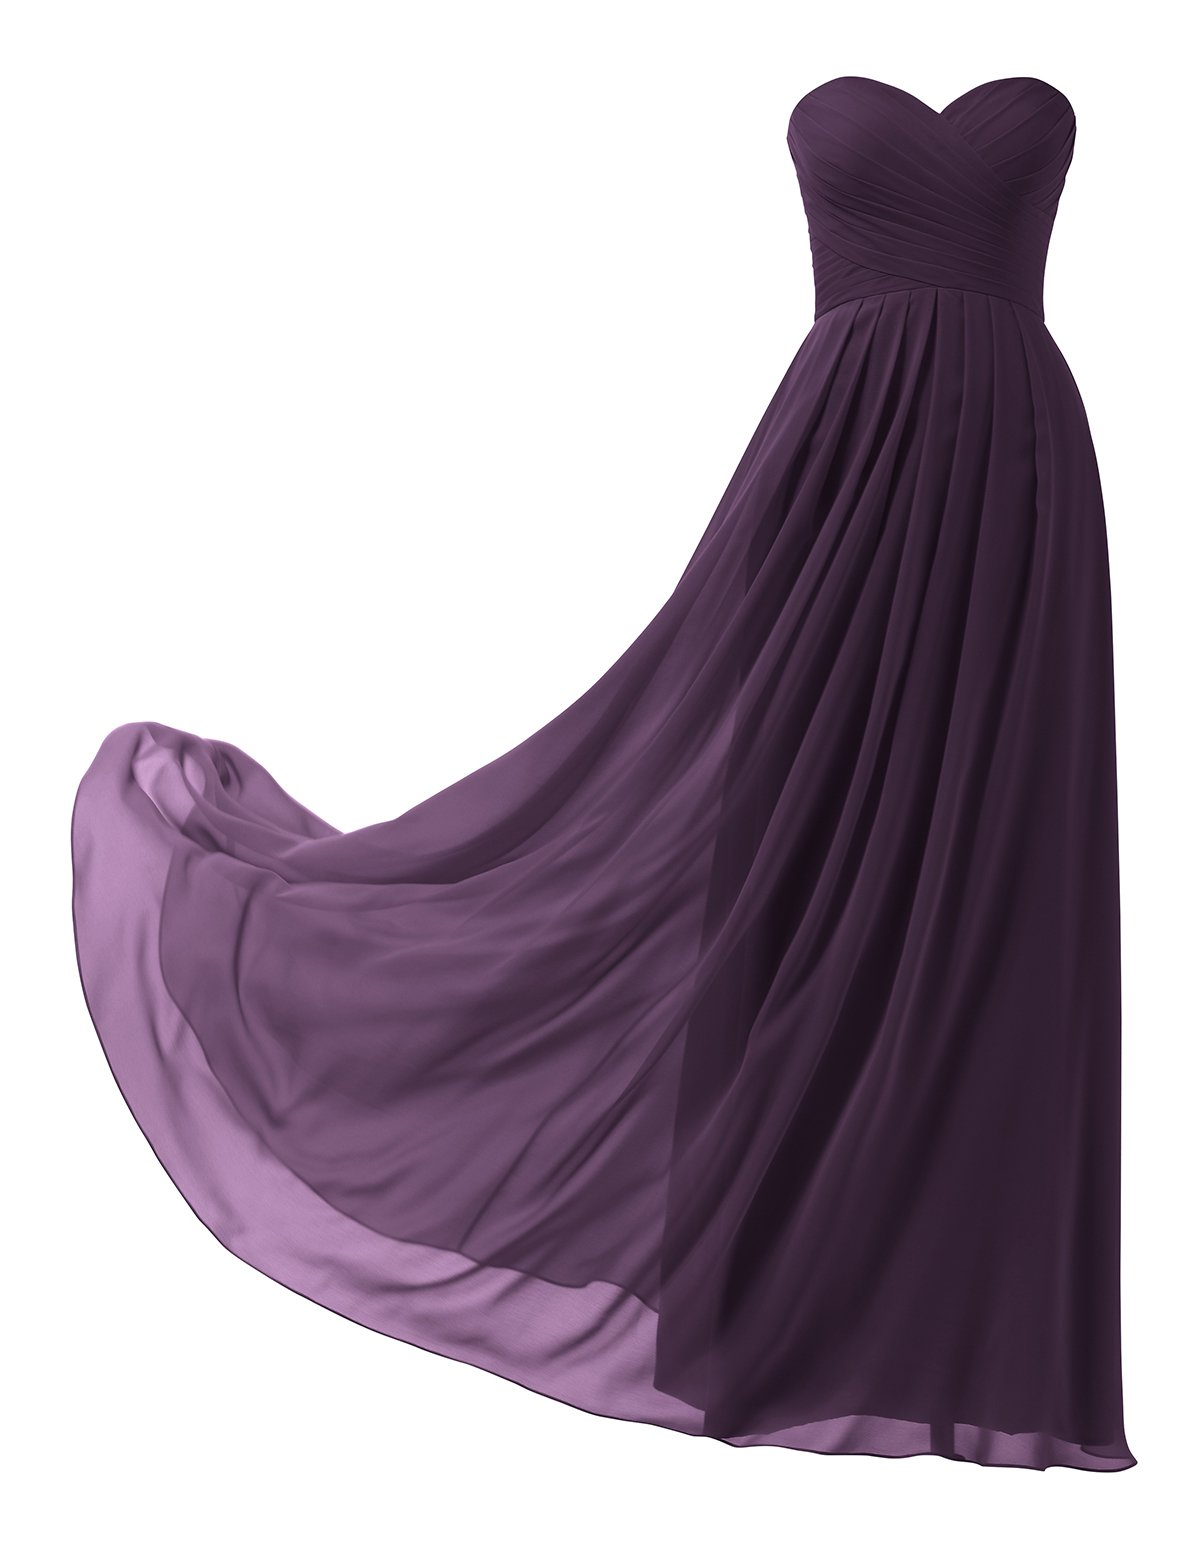 Topwedding Remedios A-Line Chiffon Bridesmaid Dress Strapless Long Prom Evening Gown, 77 Grape,US8